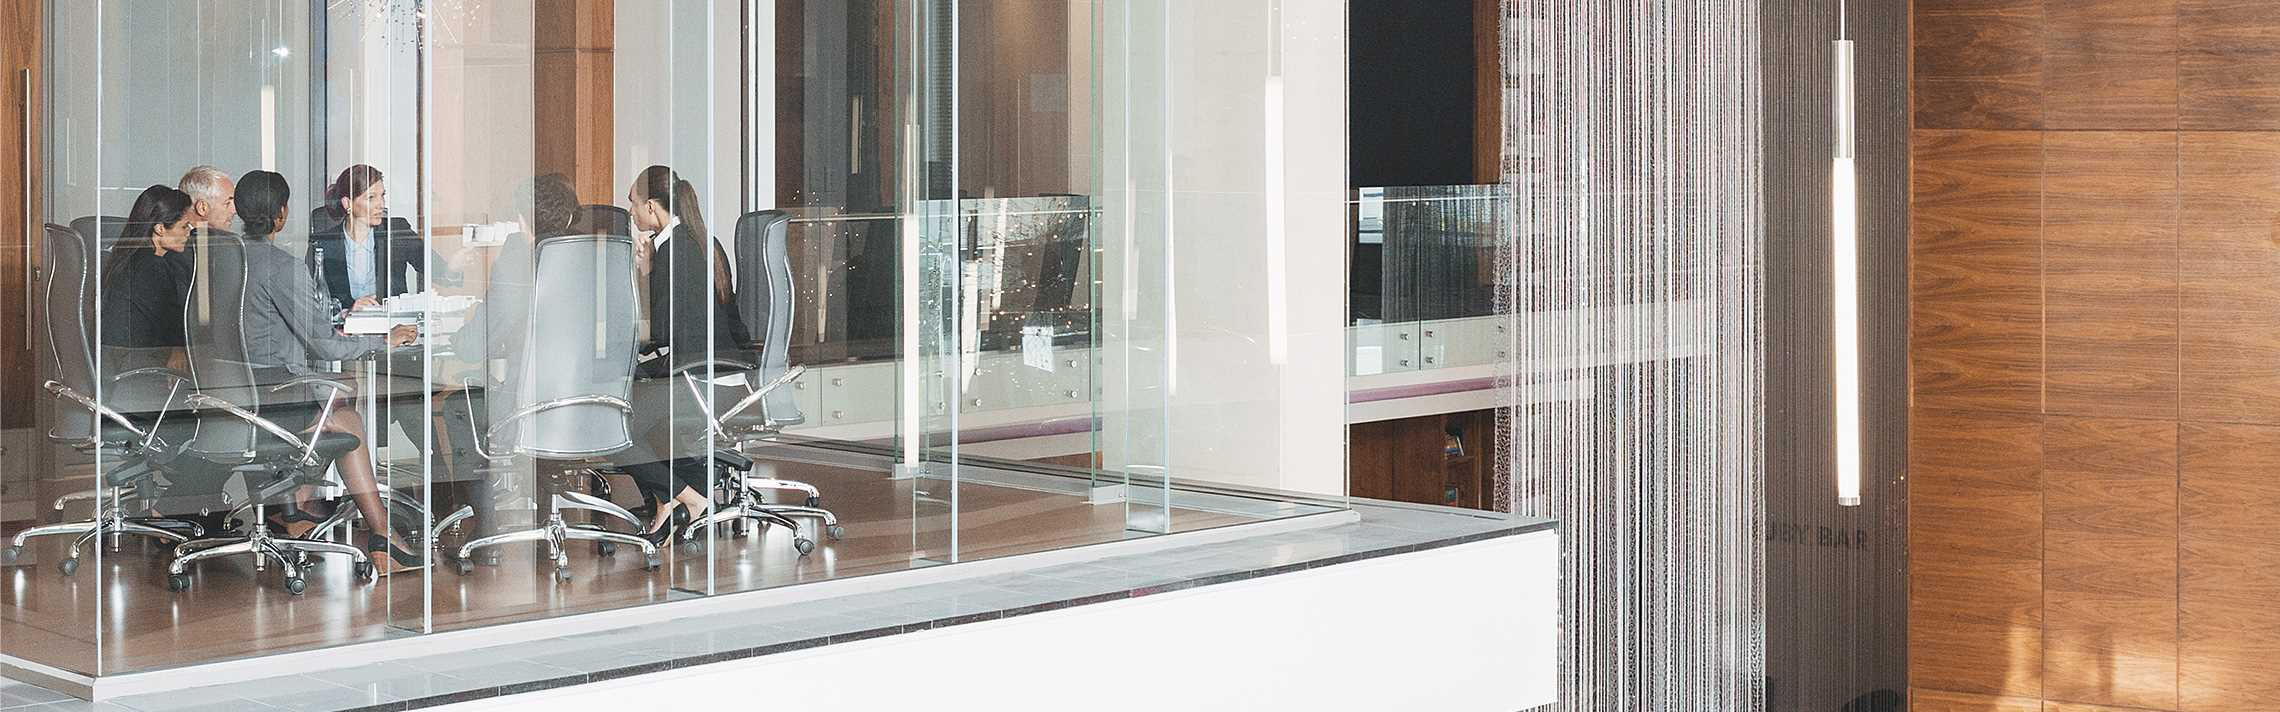 Glass meeting room in modern office.